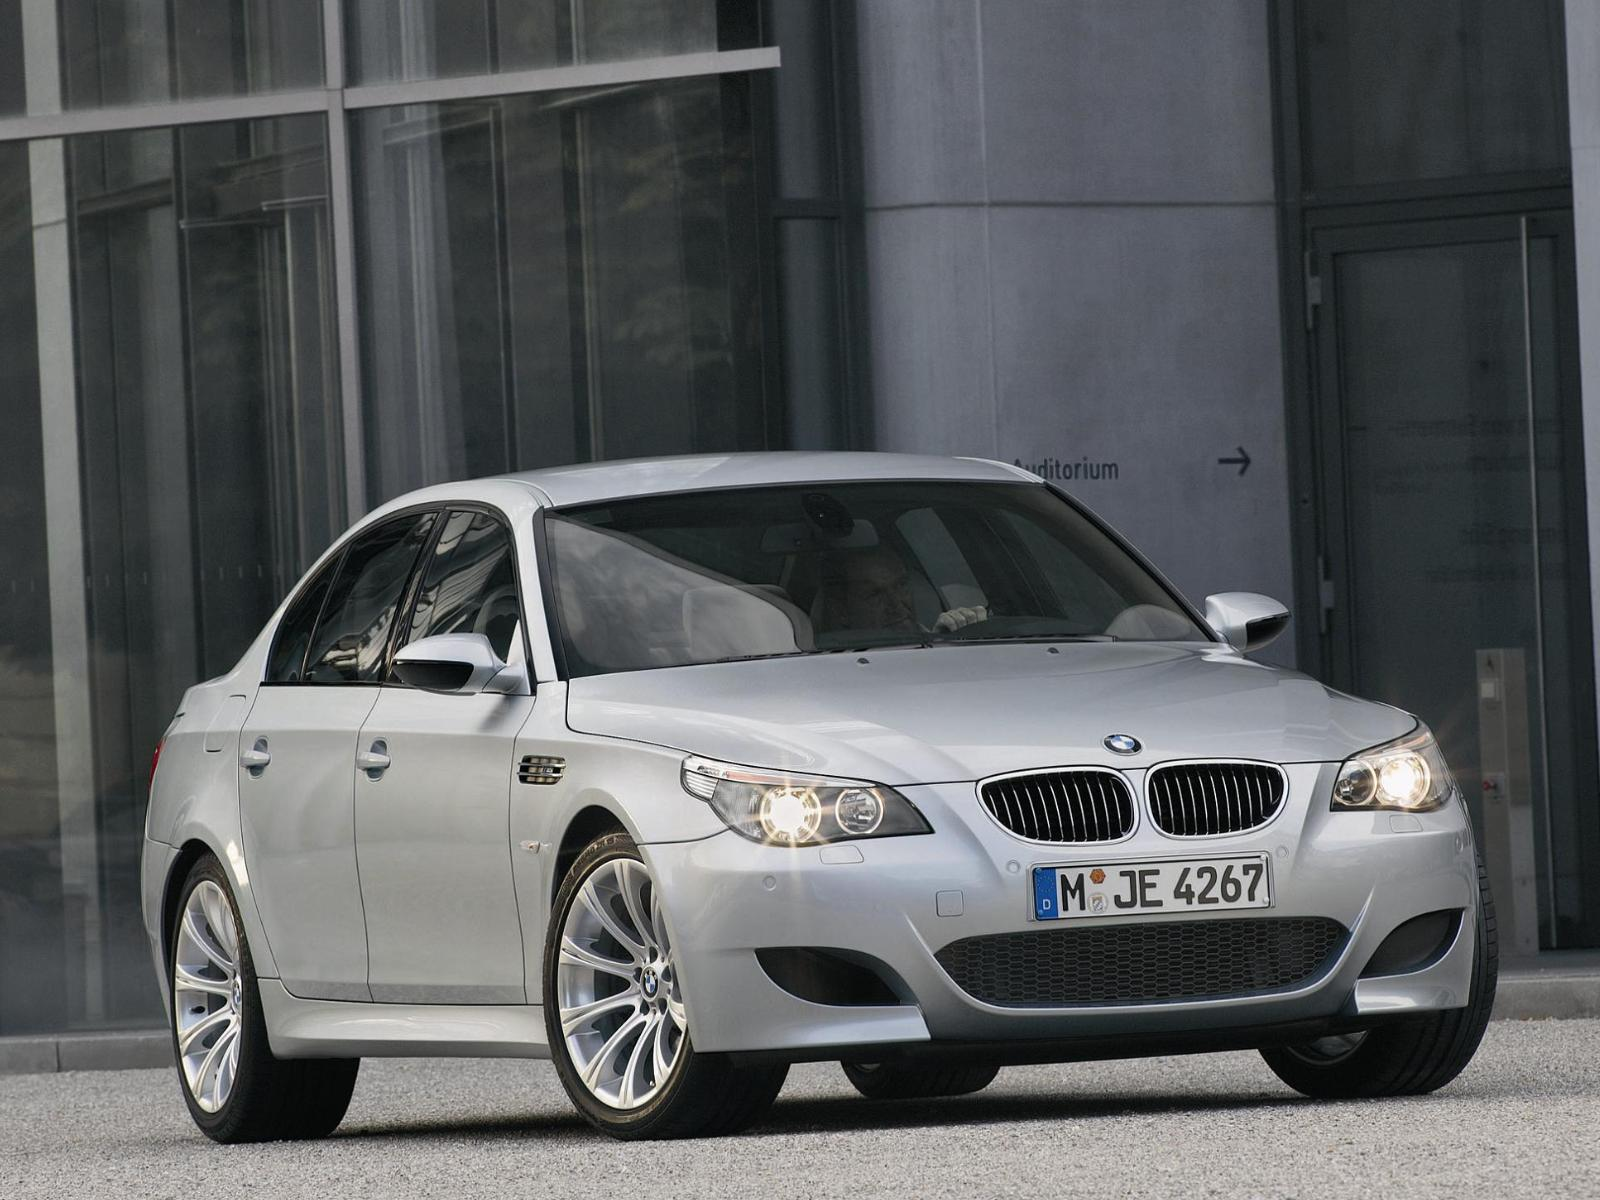 bmw tuned files bmw chiptuning remap bmw ecu files. Black Bedroom Furniture Sets. Home Design Ideas